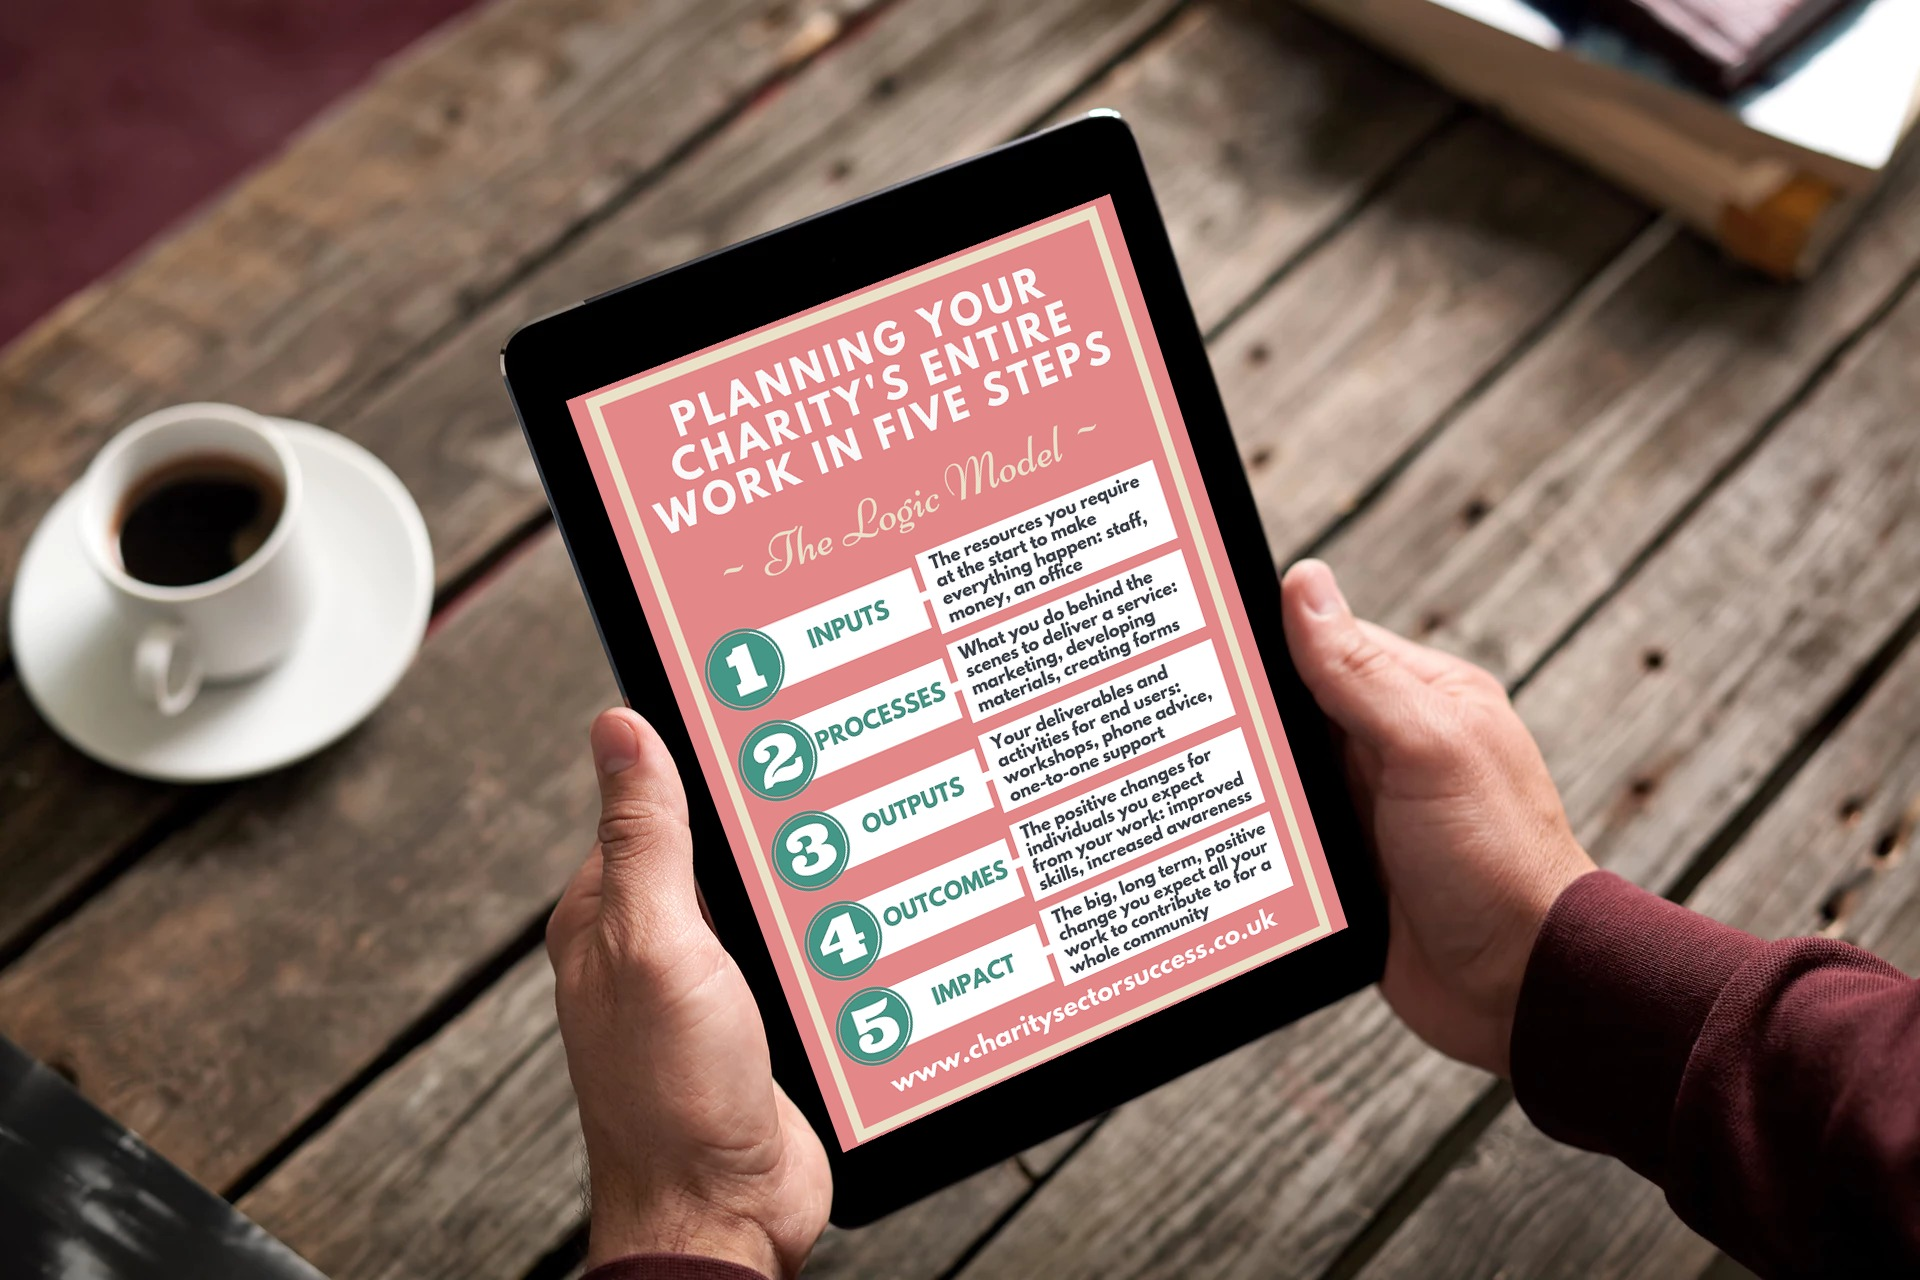 Charity Sector Success Resource on Tablet